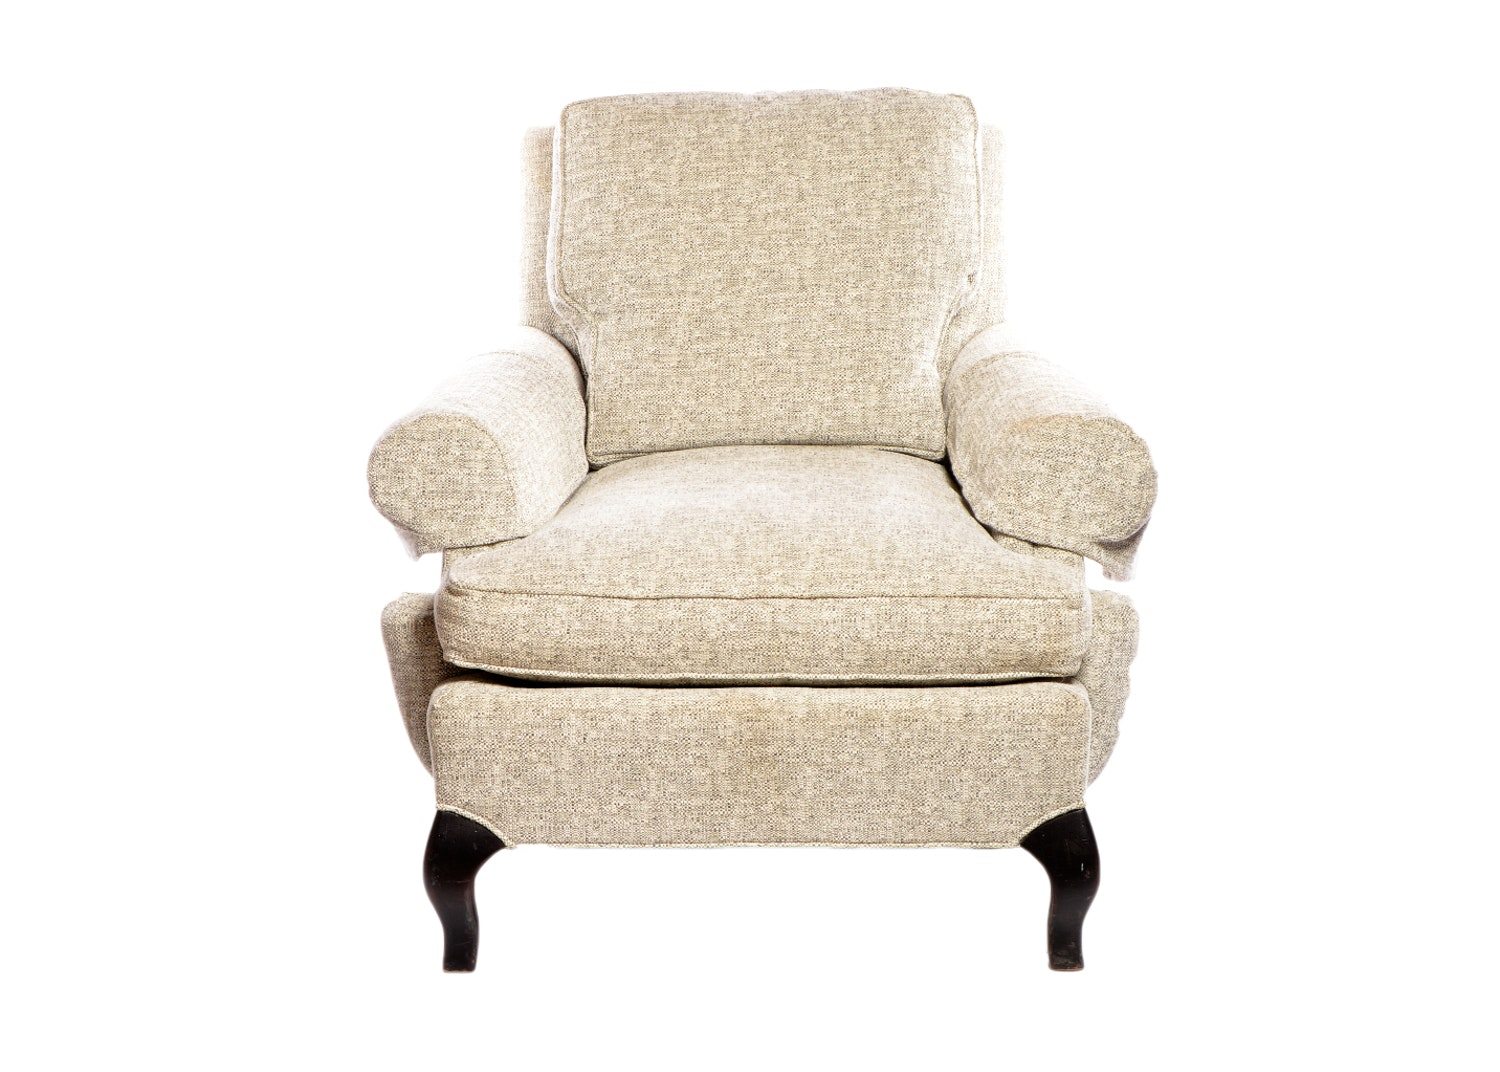 Tweed Upholstered Lounge Chair by Hickory Chair Company, 21st Century